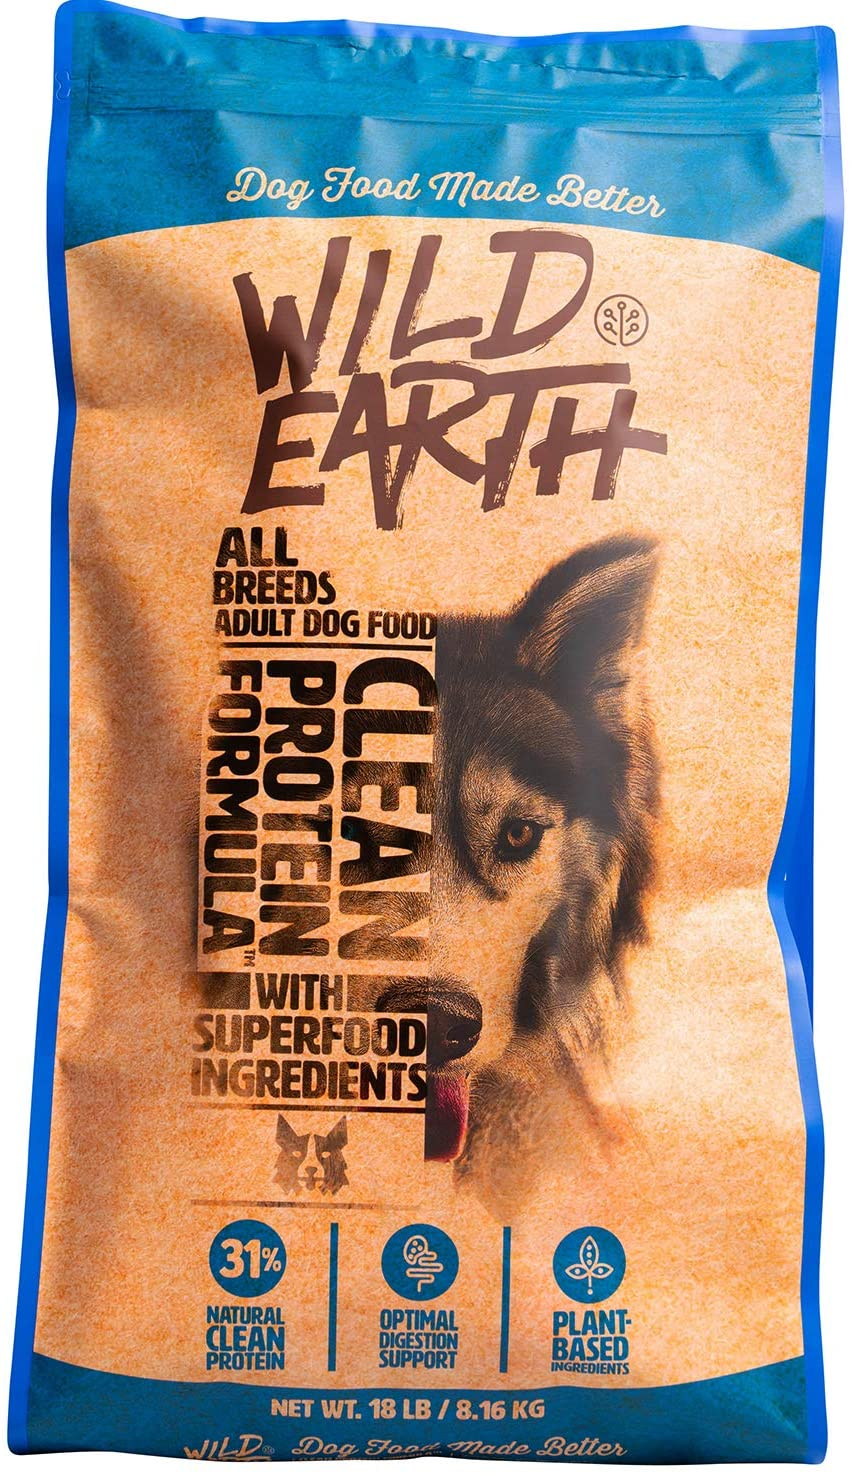 Wild Earth Clean Protein Dog Food